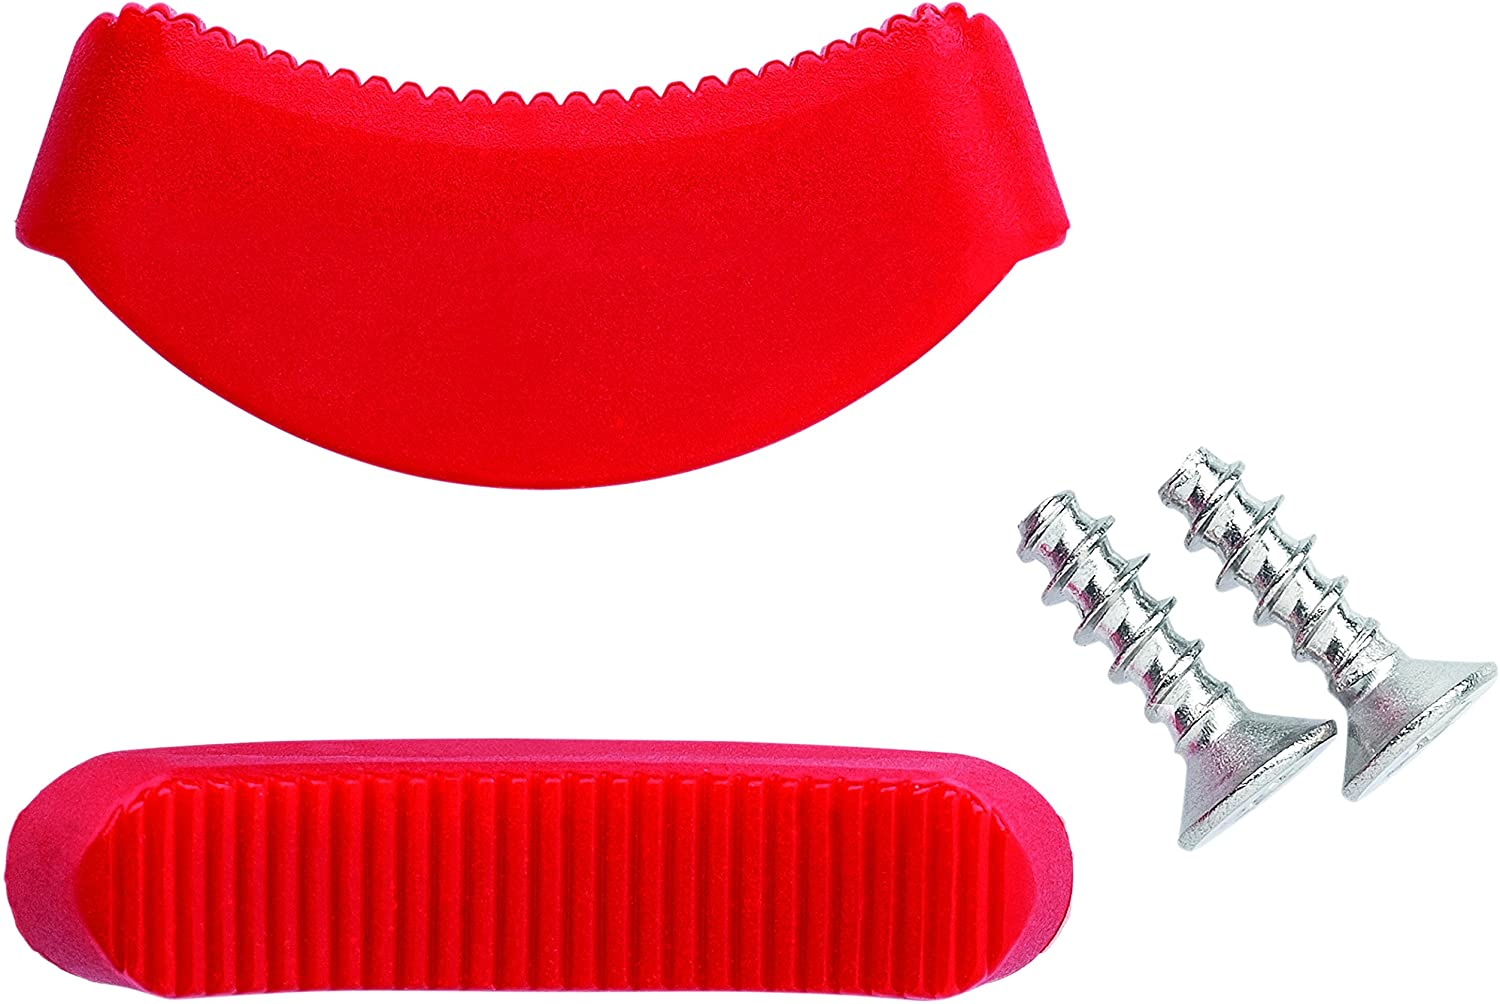 Set of Plastic Jaws for 81 11 250 8119250 KNIPEX Tools